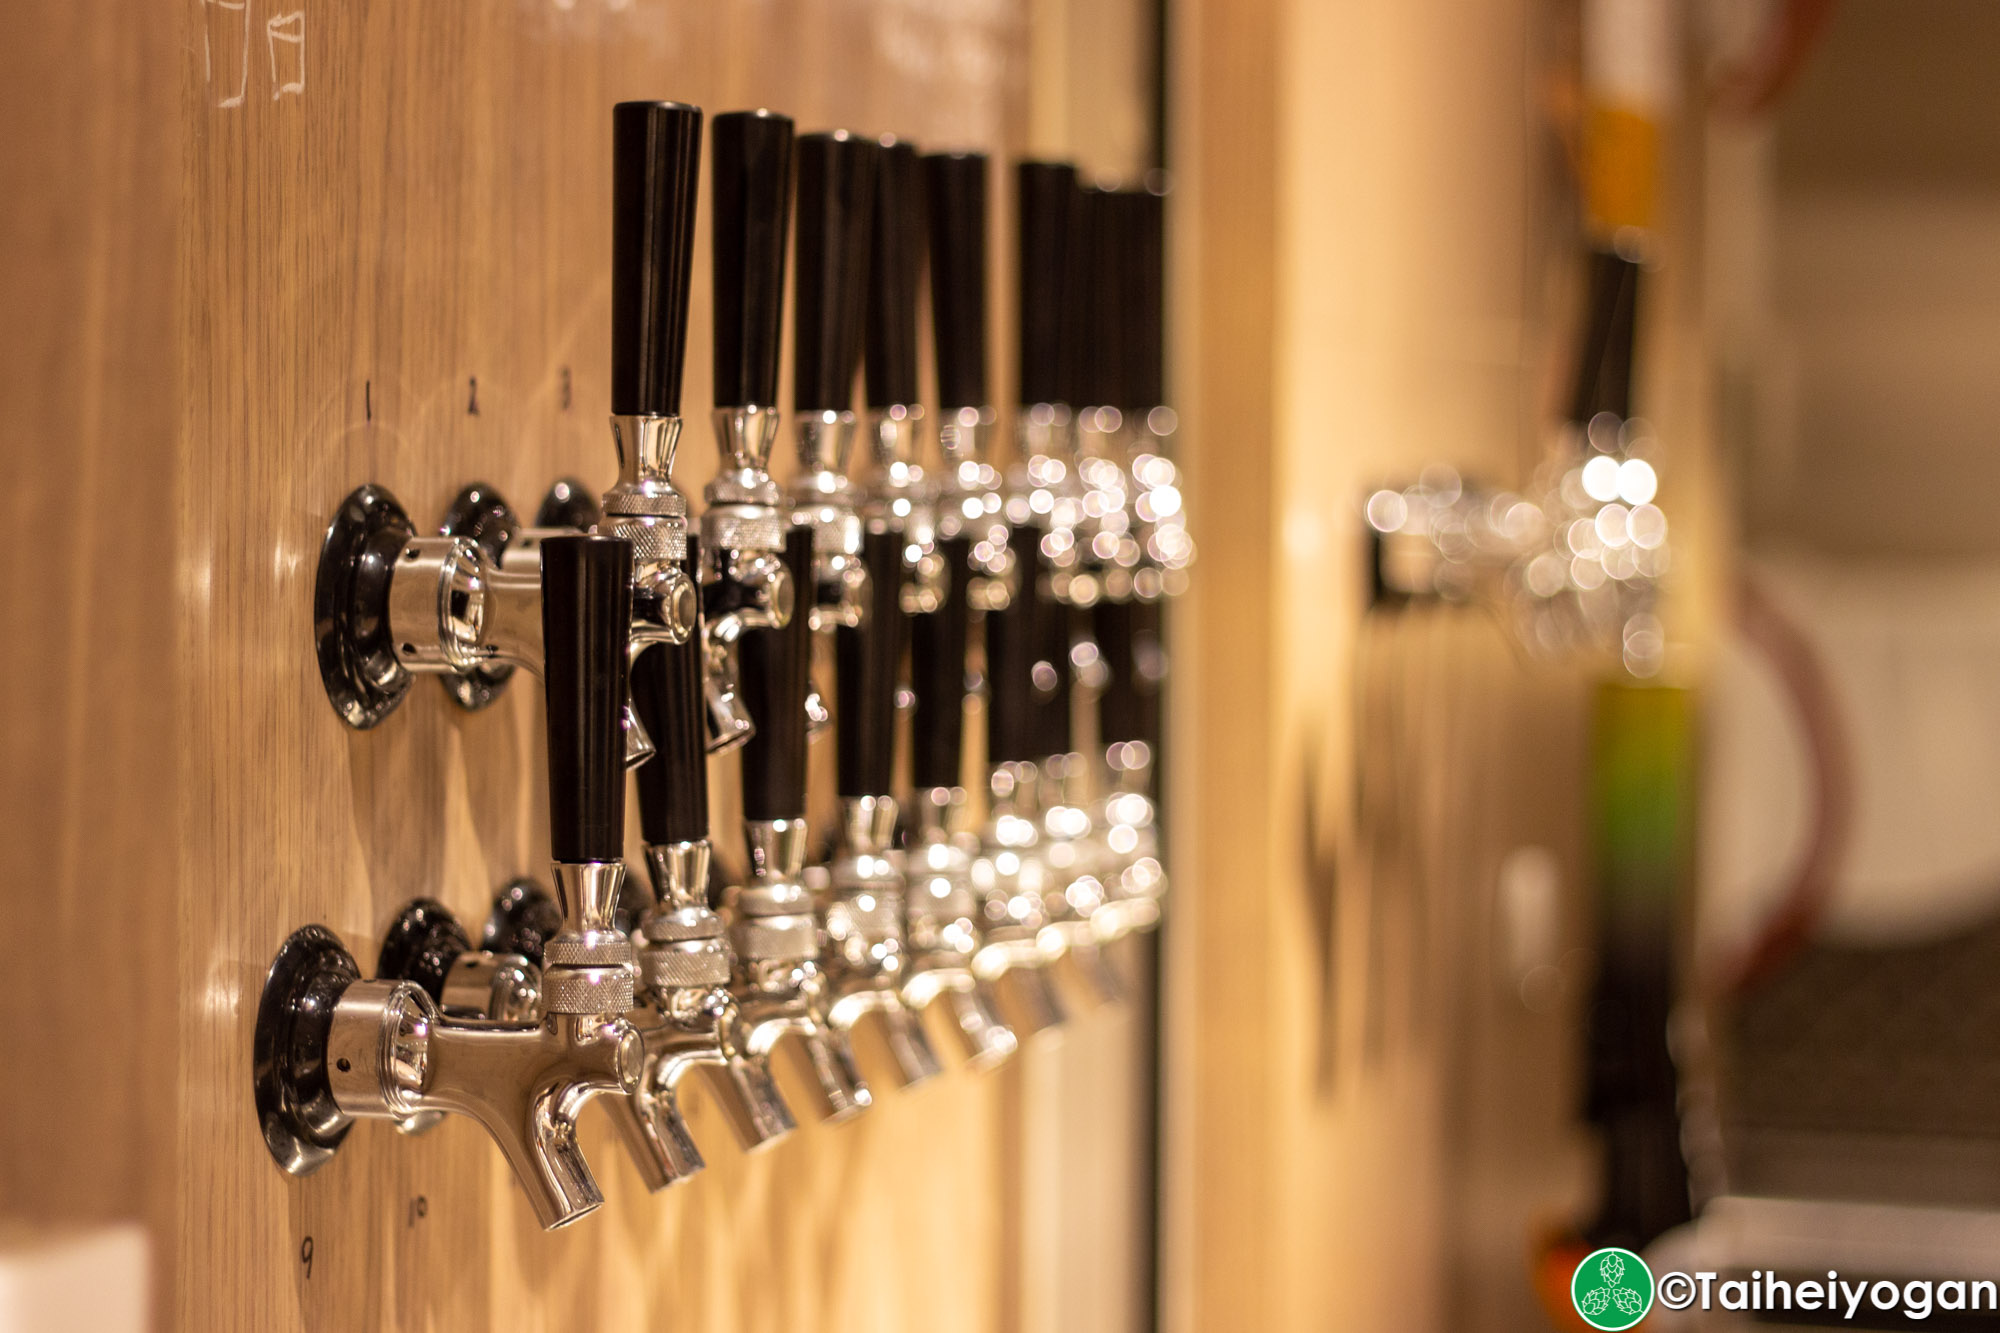 Ant 'n Bee (龍土町店・Ryudocho) - Interior - Beer Taps